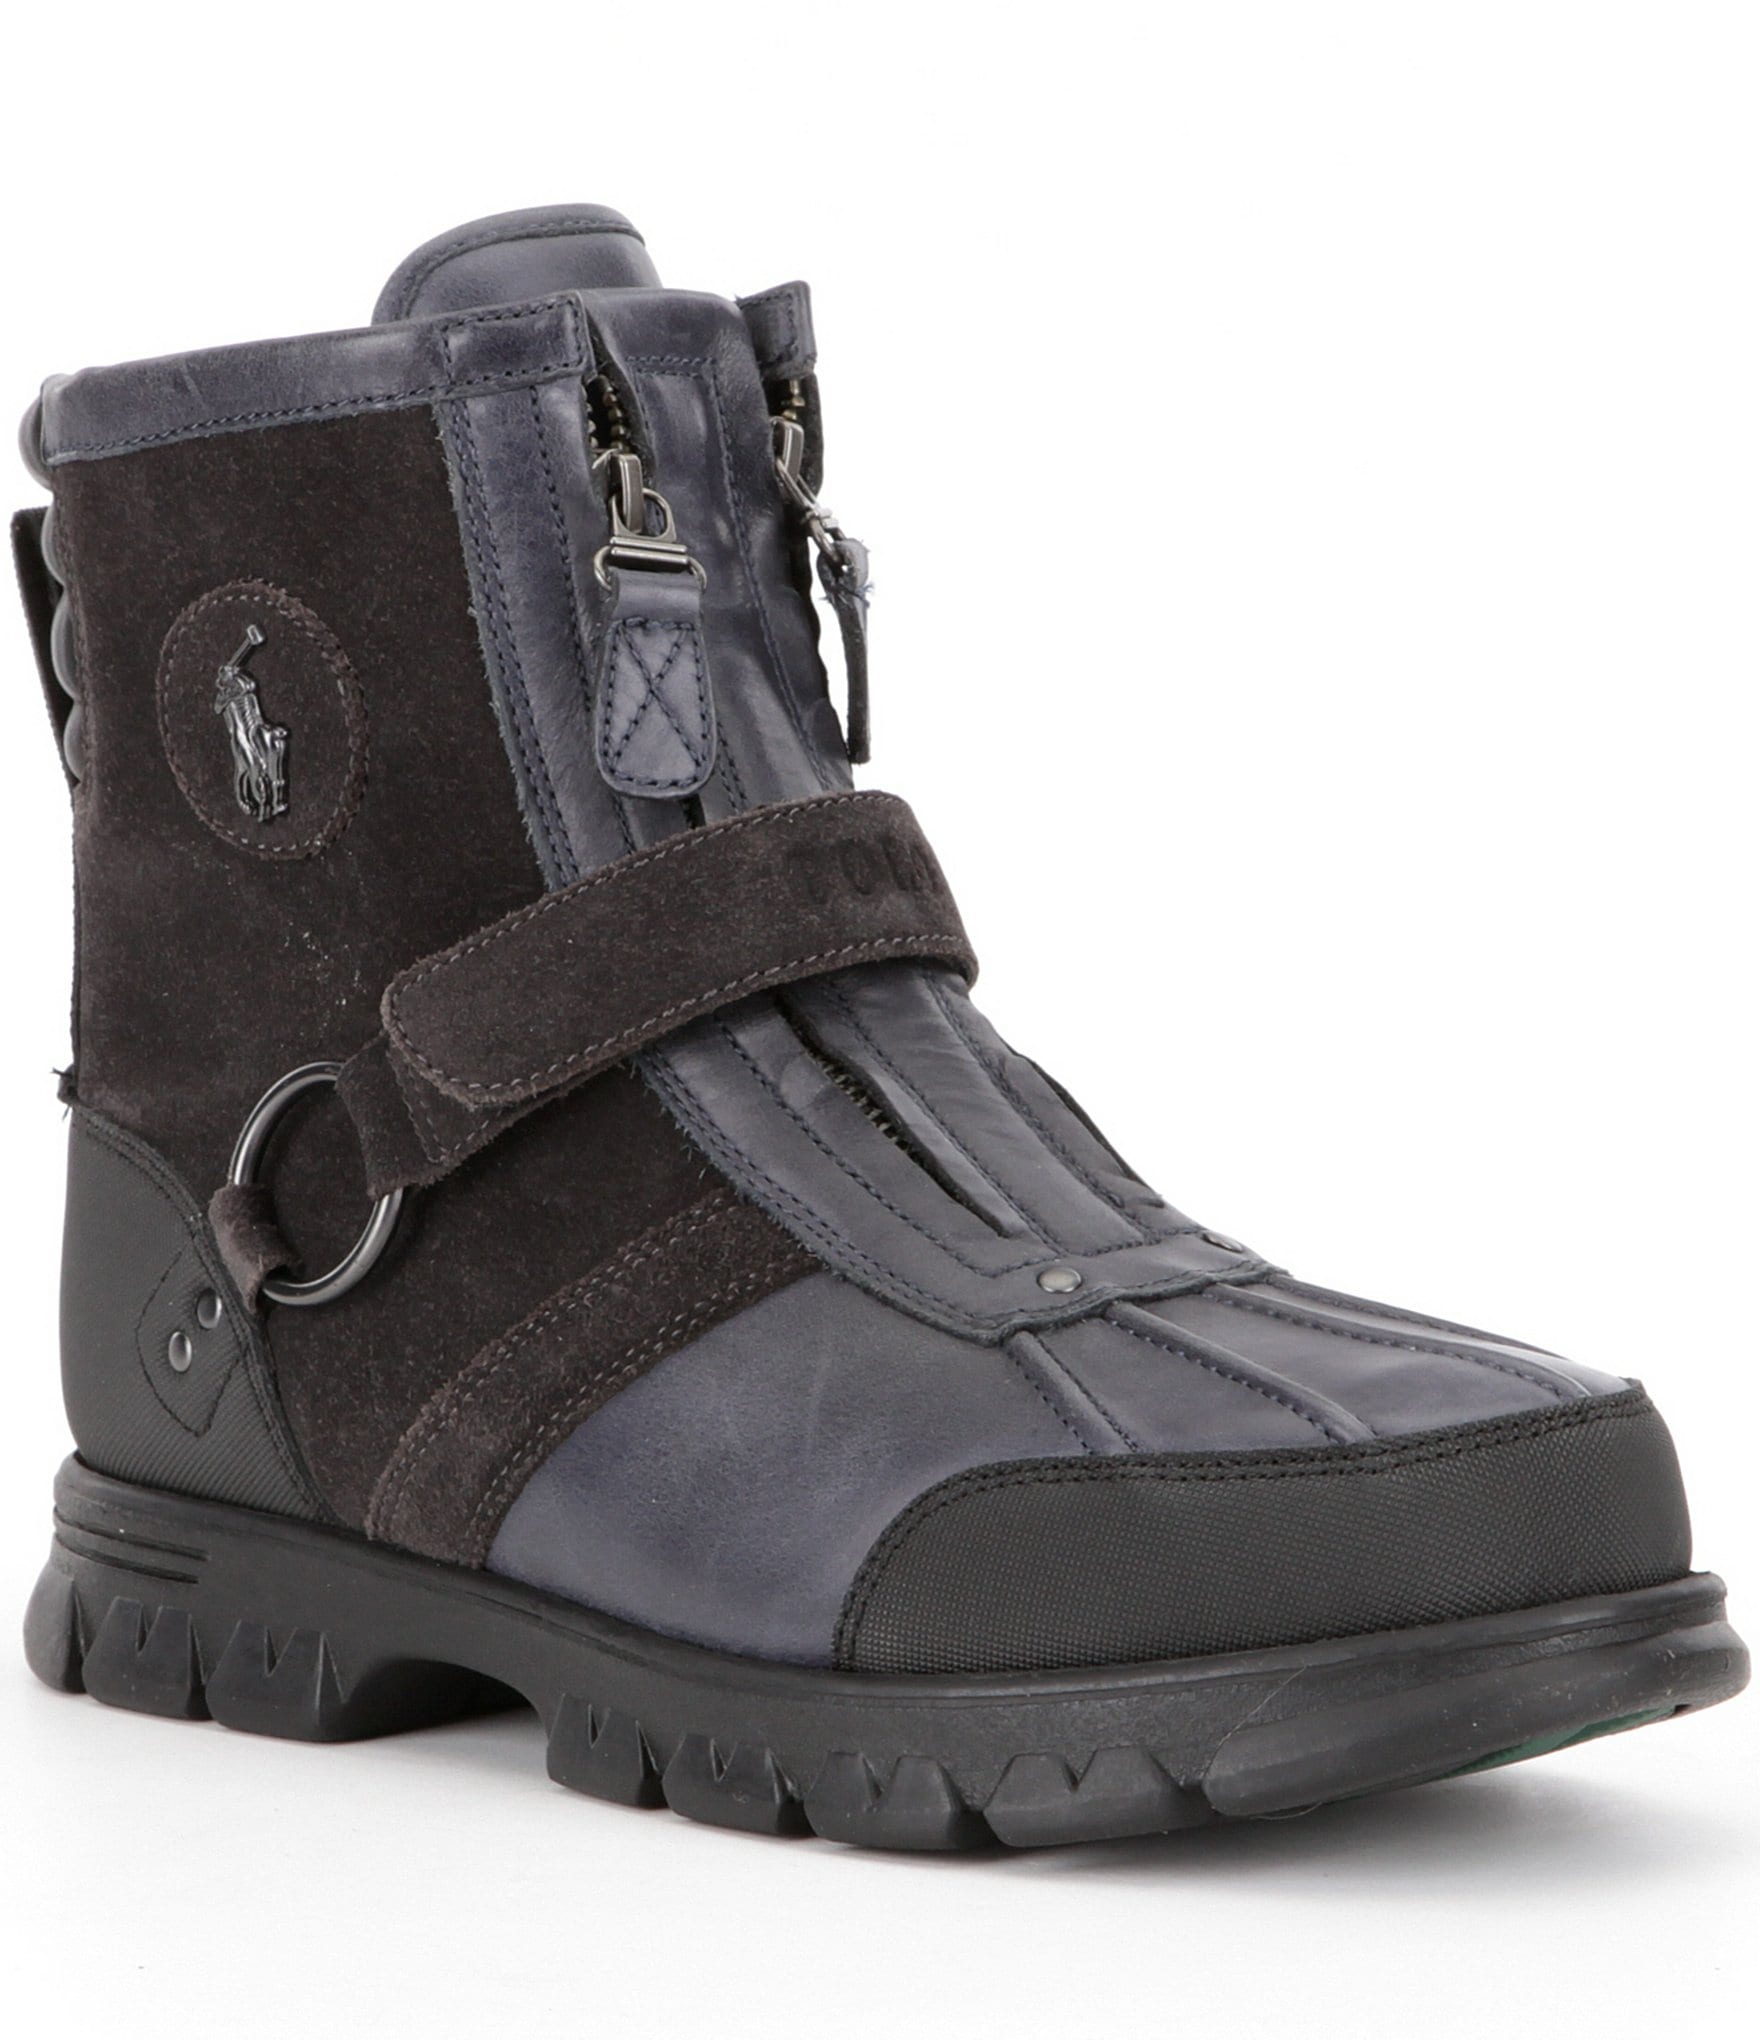 polo ralph lauren conquest iii men s rugged boots dillards. Black Bedroom Furniture Sets. Home Design Ideas